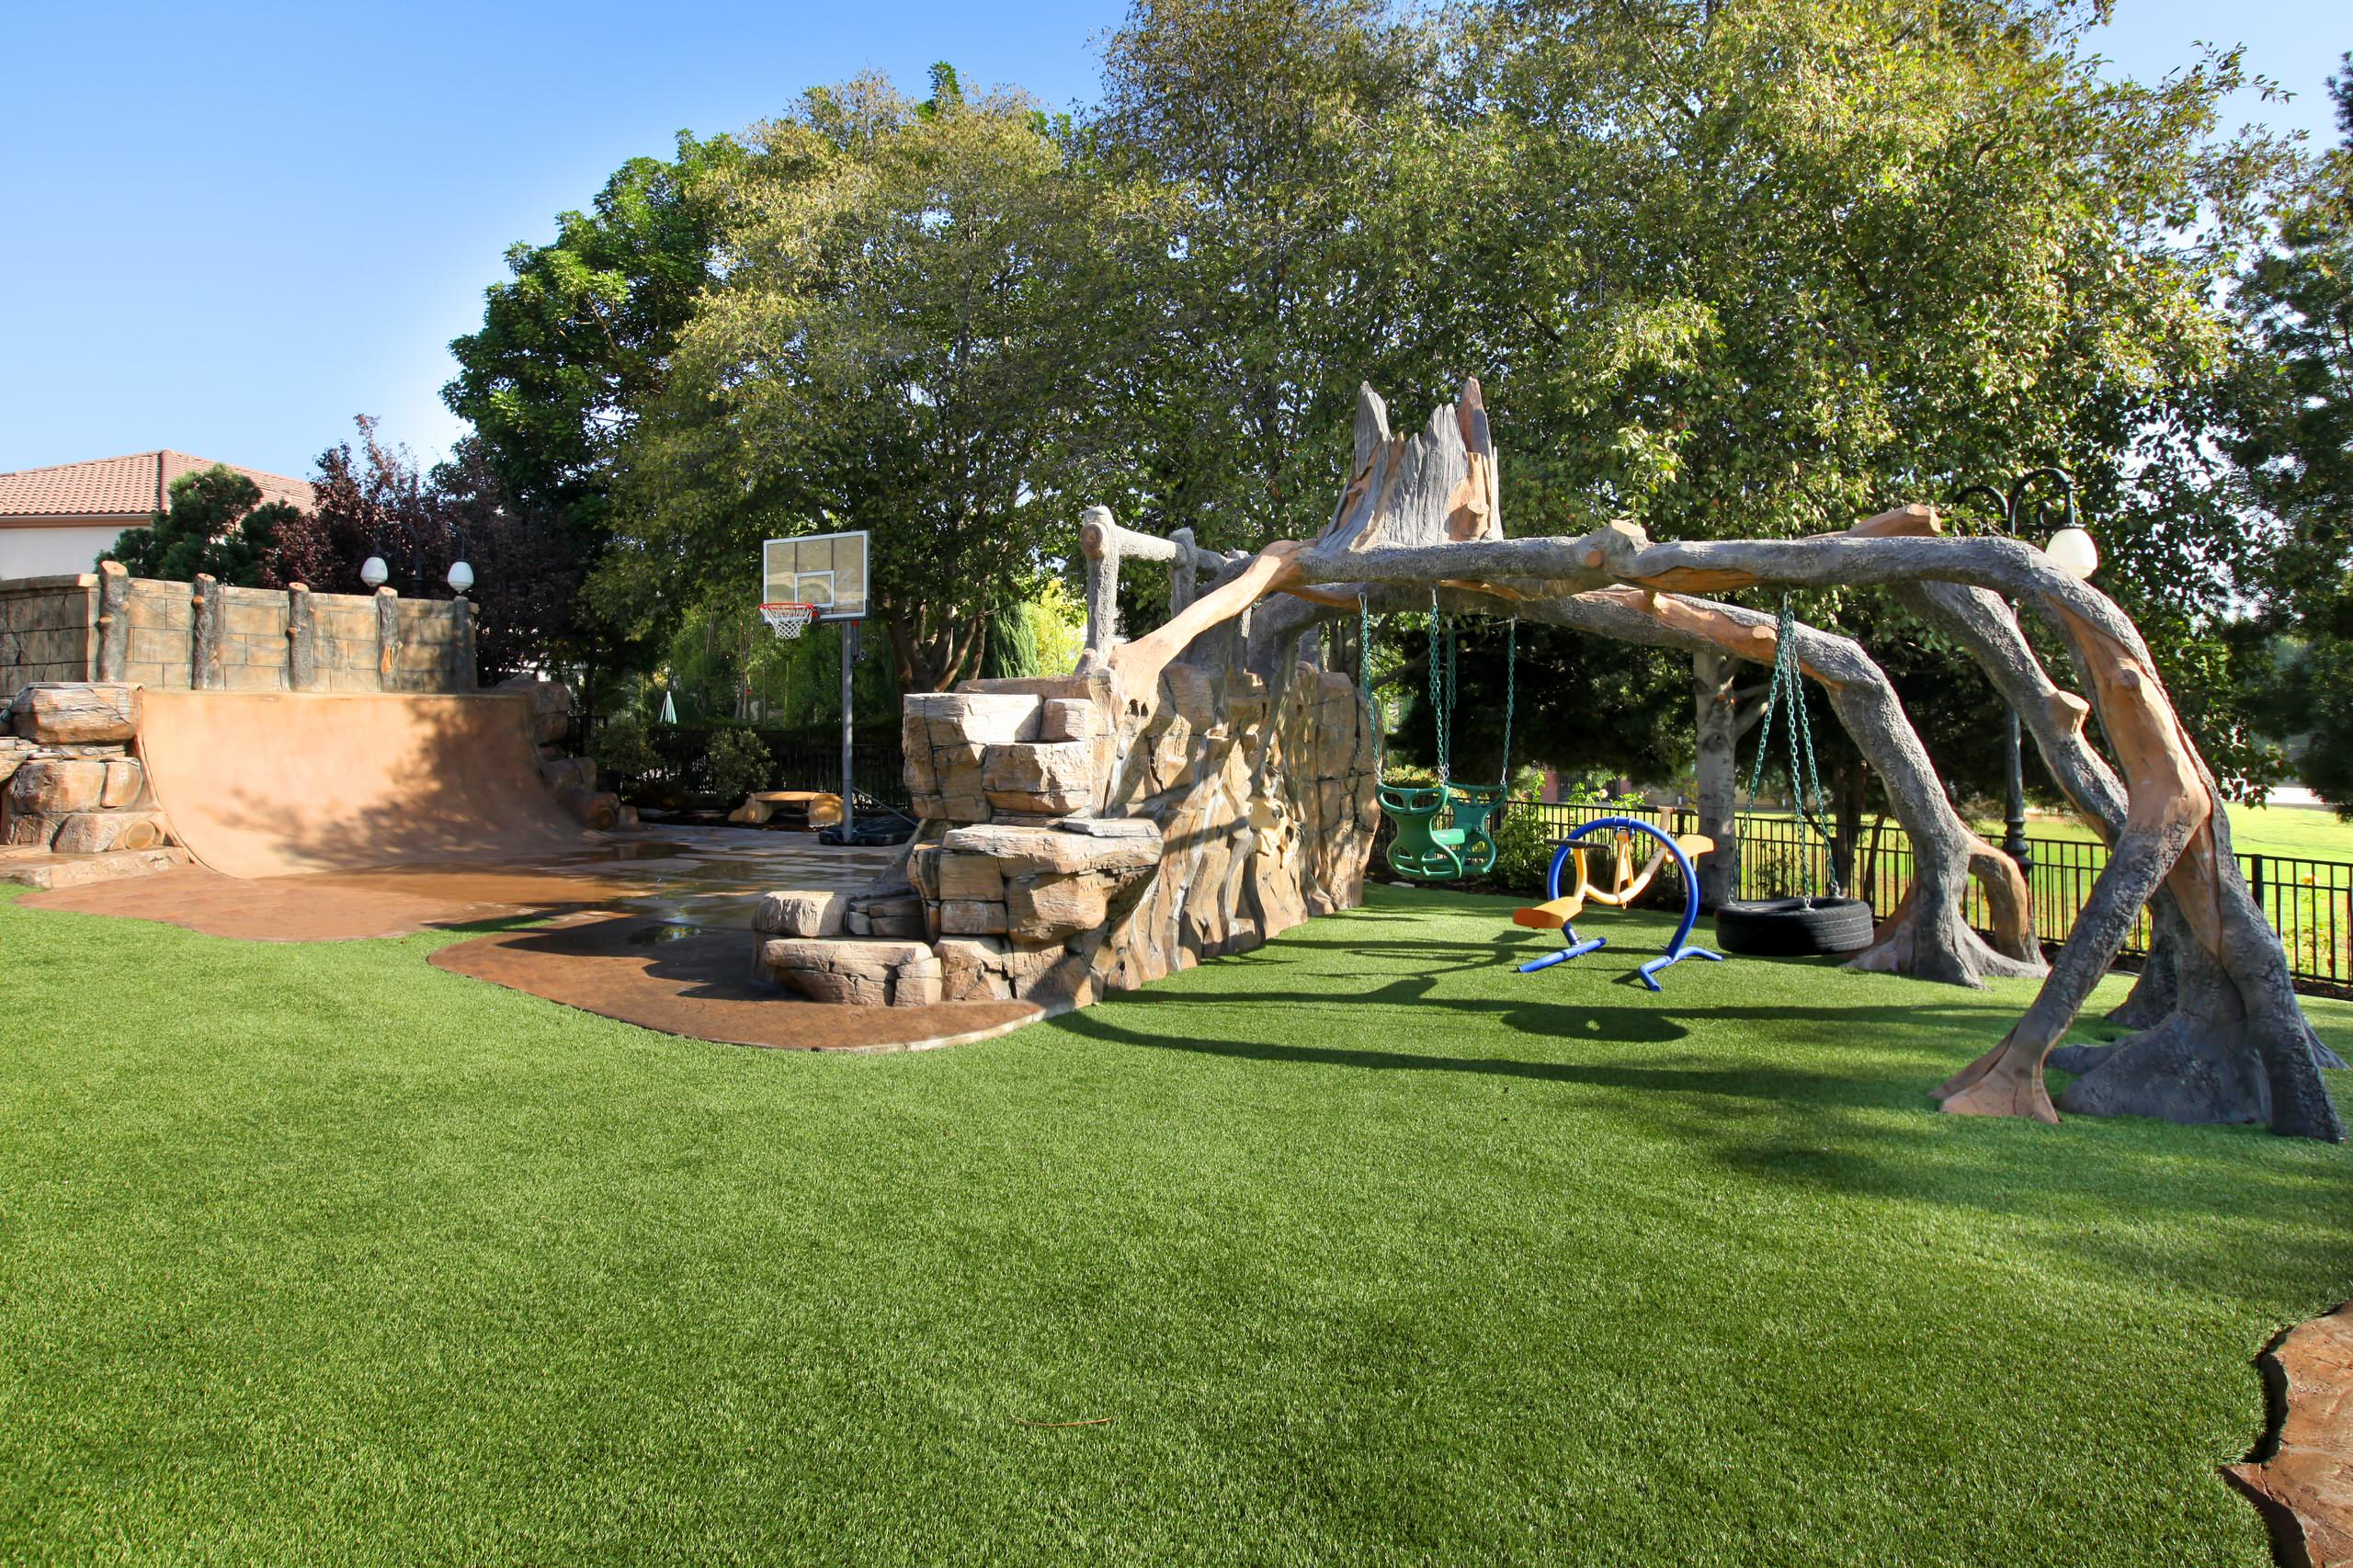 Exciting Backyard Design Ideas with Swing Sets: Amazing Backyard Design Ideas With Stacked Stones Ideas And Lawn Plus Surprising Outdoor Play Area With Swing Sets And Basketball Court Plus Big Trees Also Low Fence